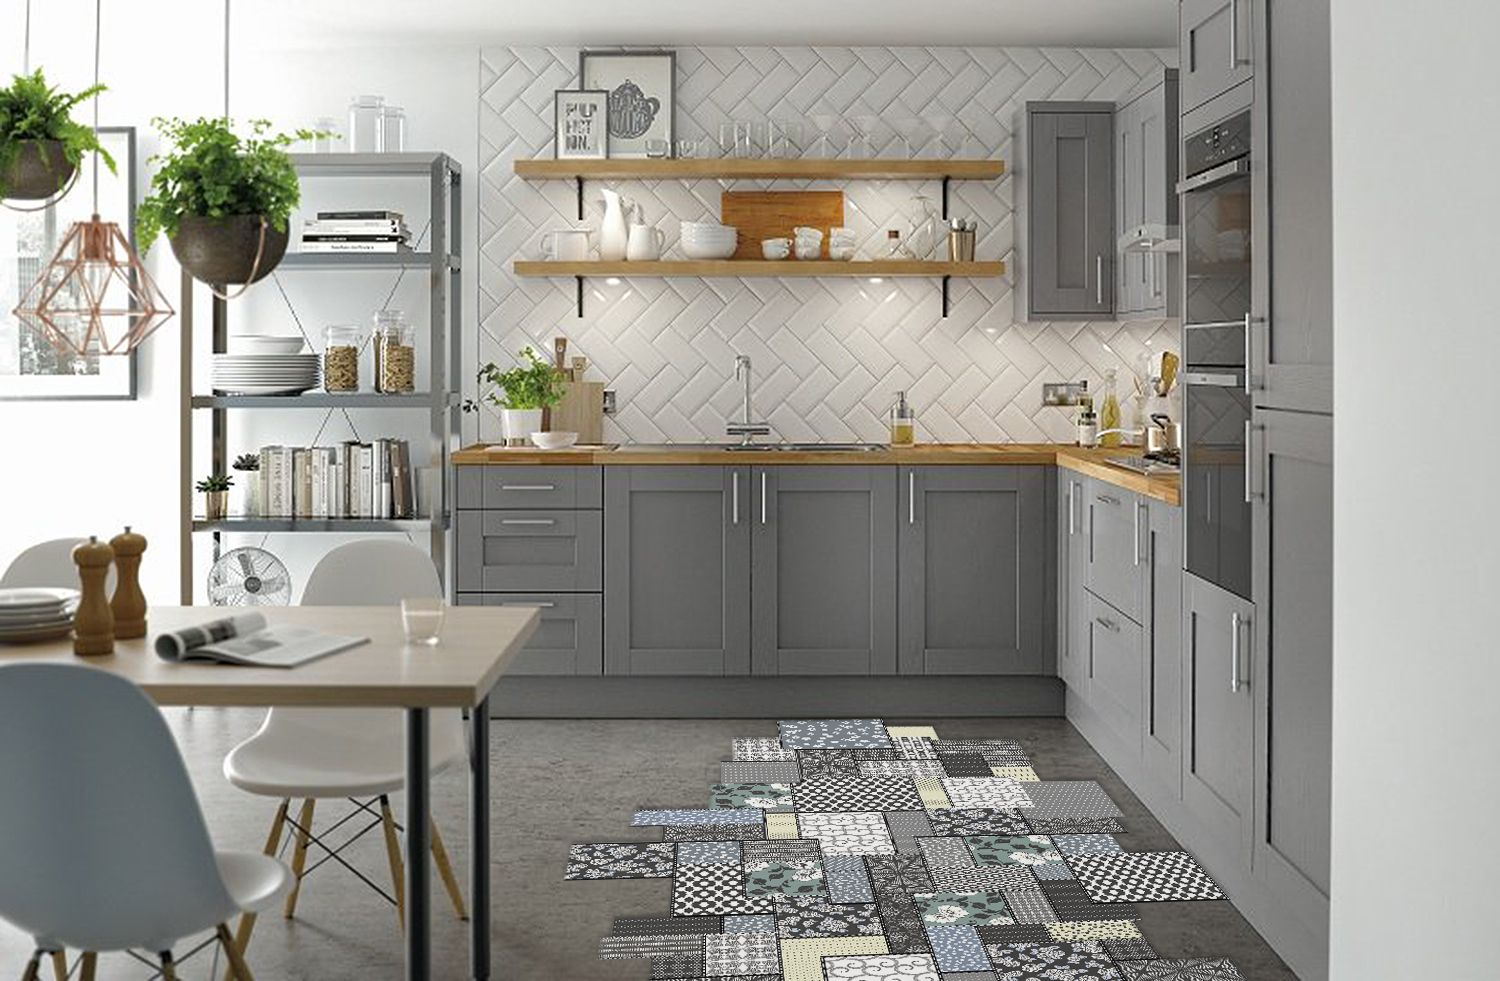 Pin by MadiArts on Ideas for the house Homebase kitchens